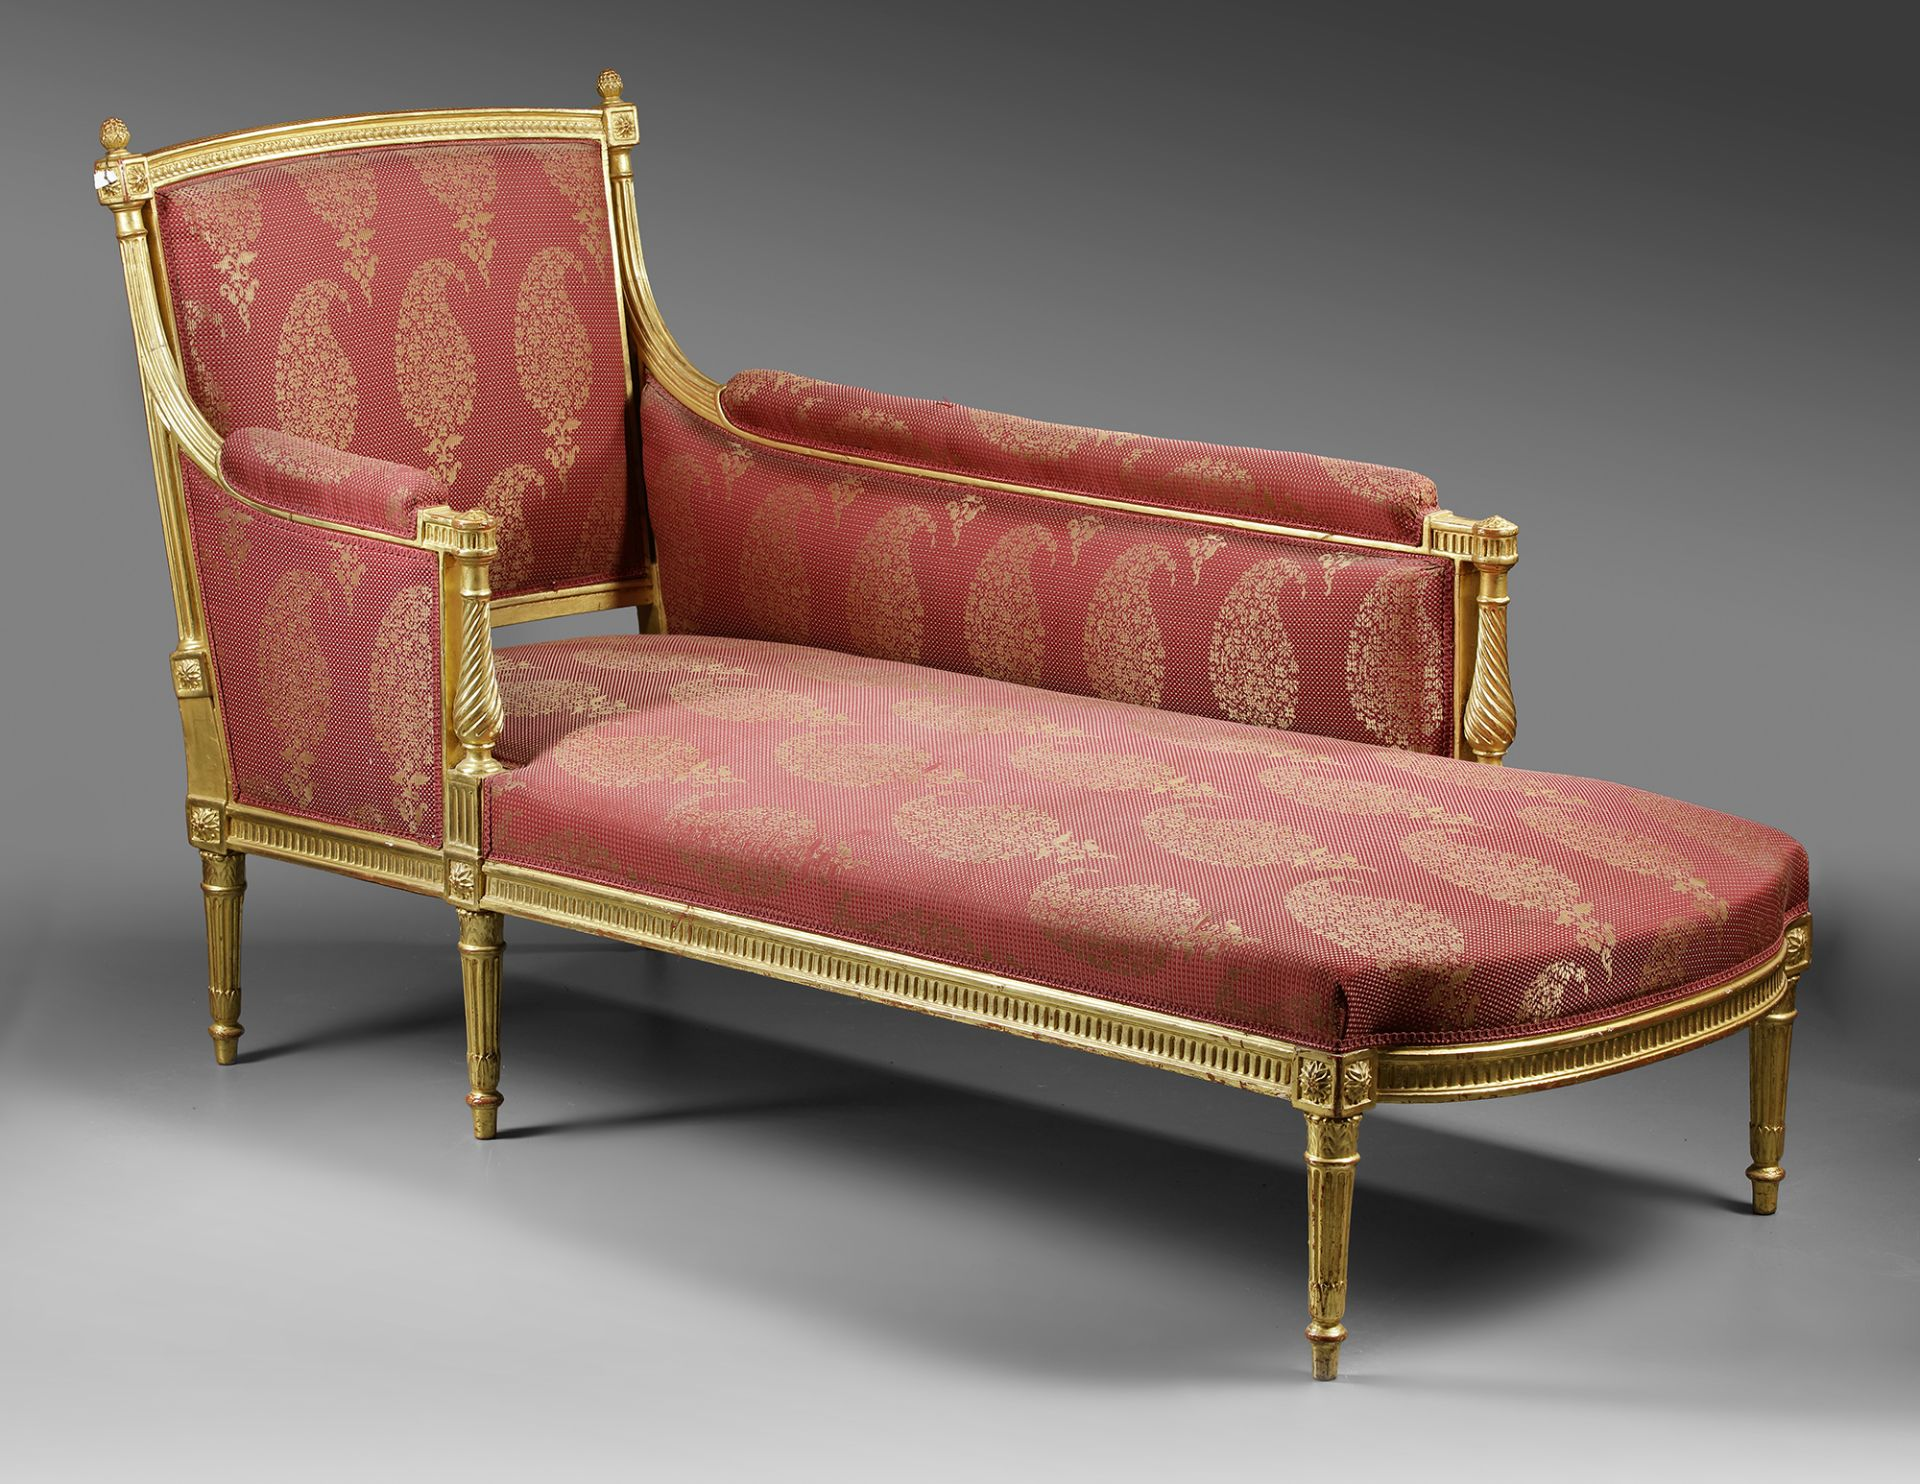 A FRENCH LOUNGE CHAIR, LOUIS XVI STYLE, LATE 19TH CENTURY